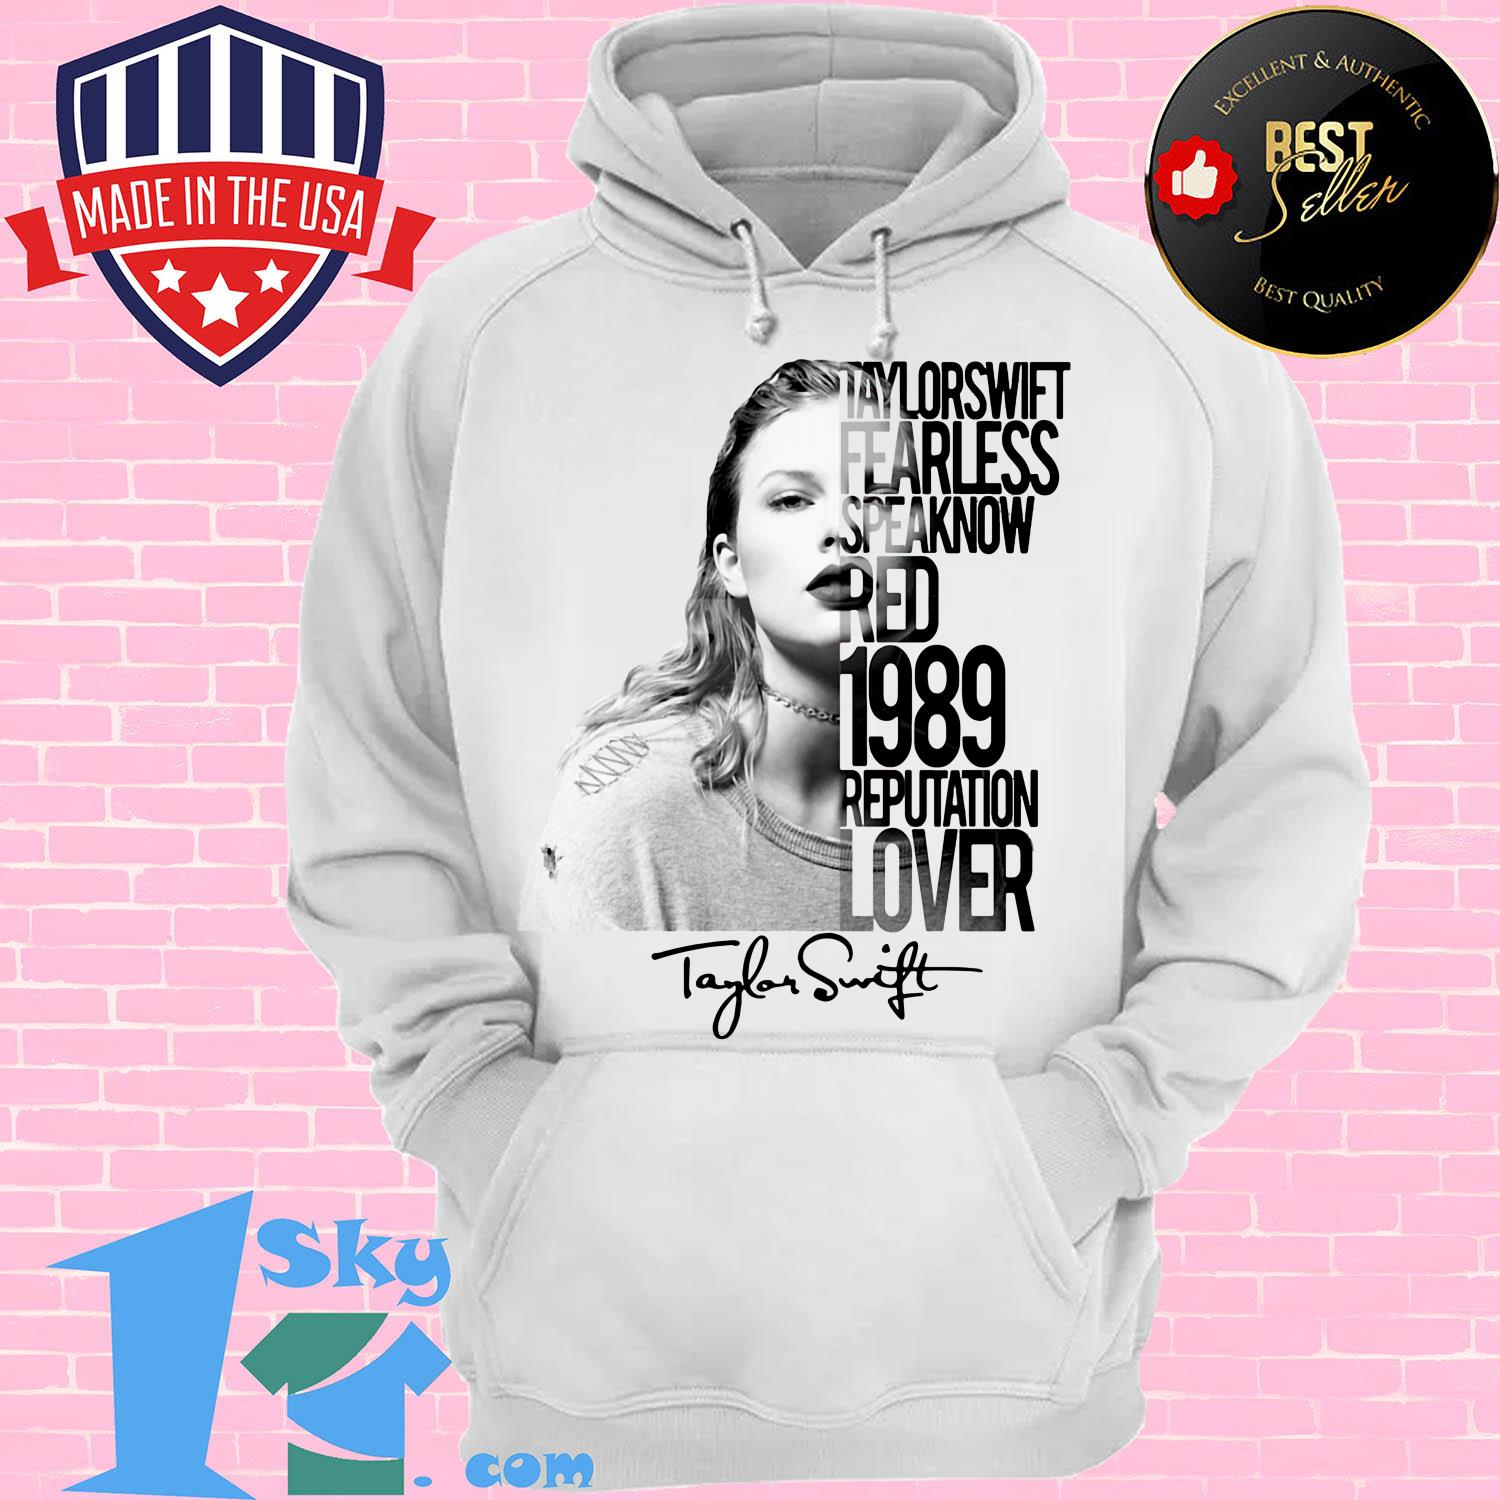 taylor swift fearless speak now red 1989 reputation lover poster hoodie - Taylor Swift fearless Speak Now Red 1989 Reputation Lover Poster Signature shirt